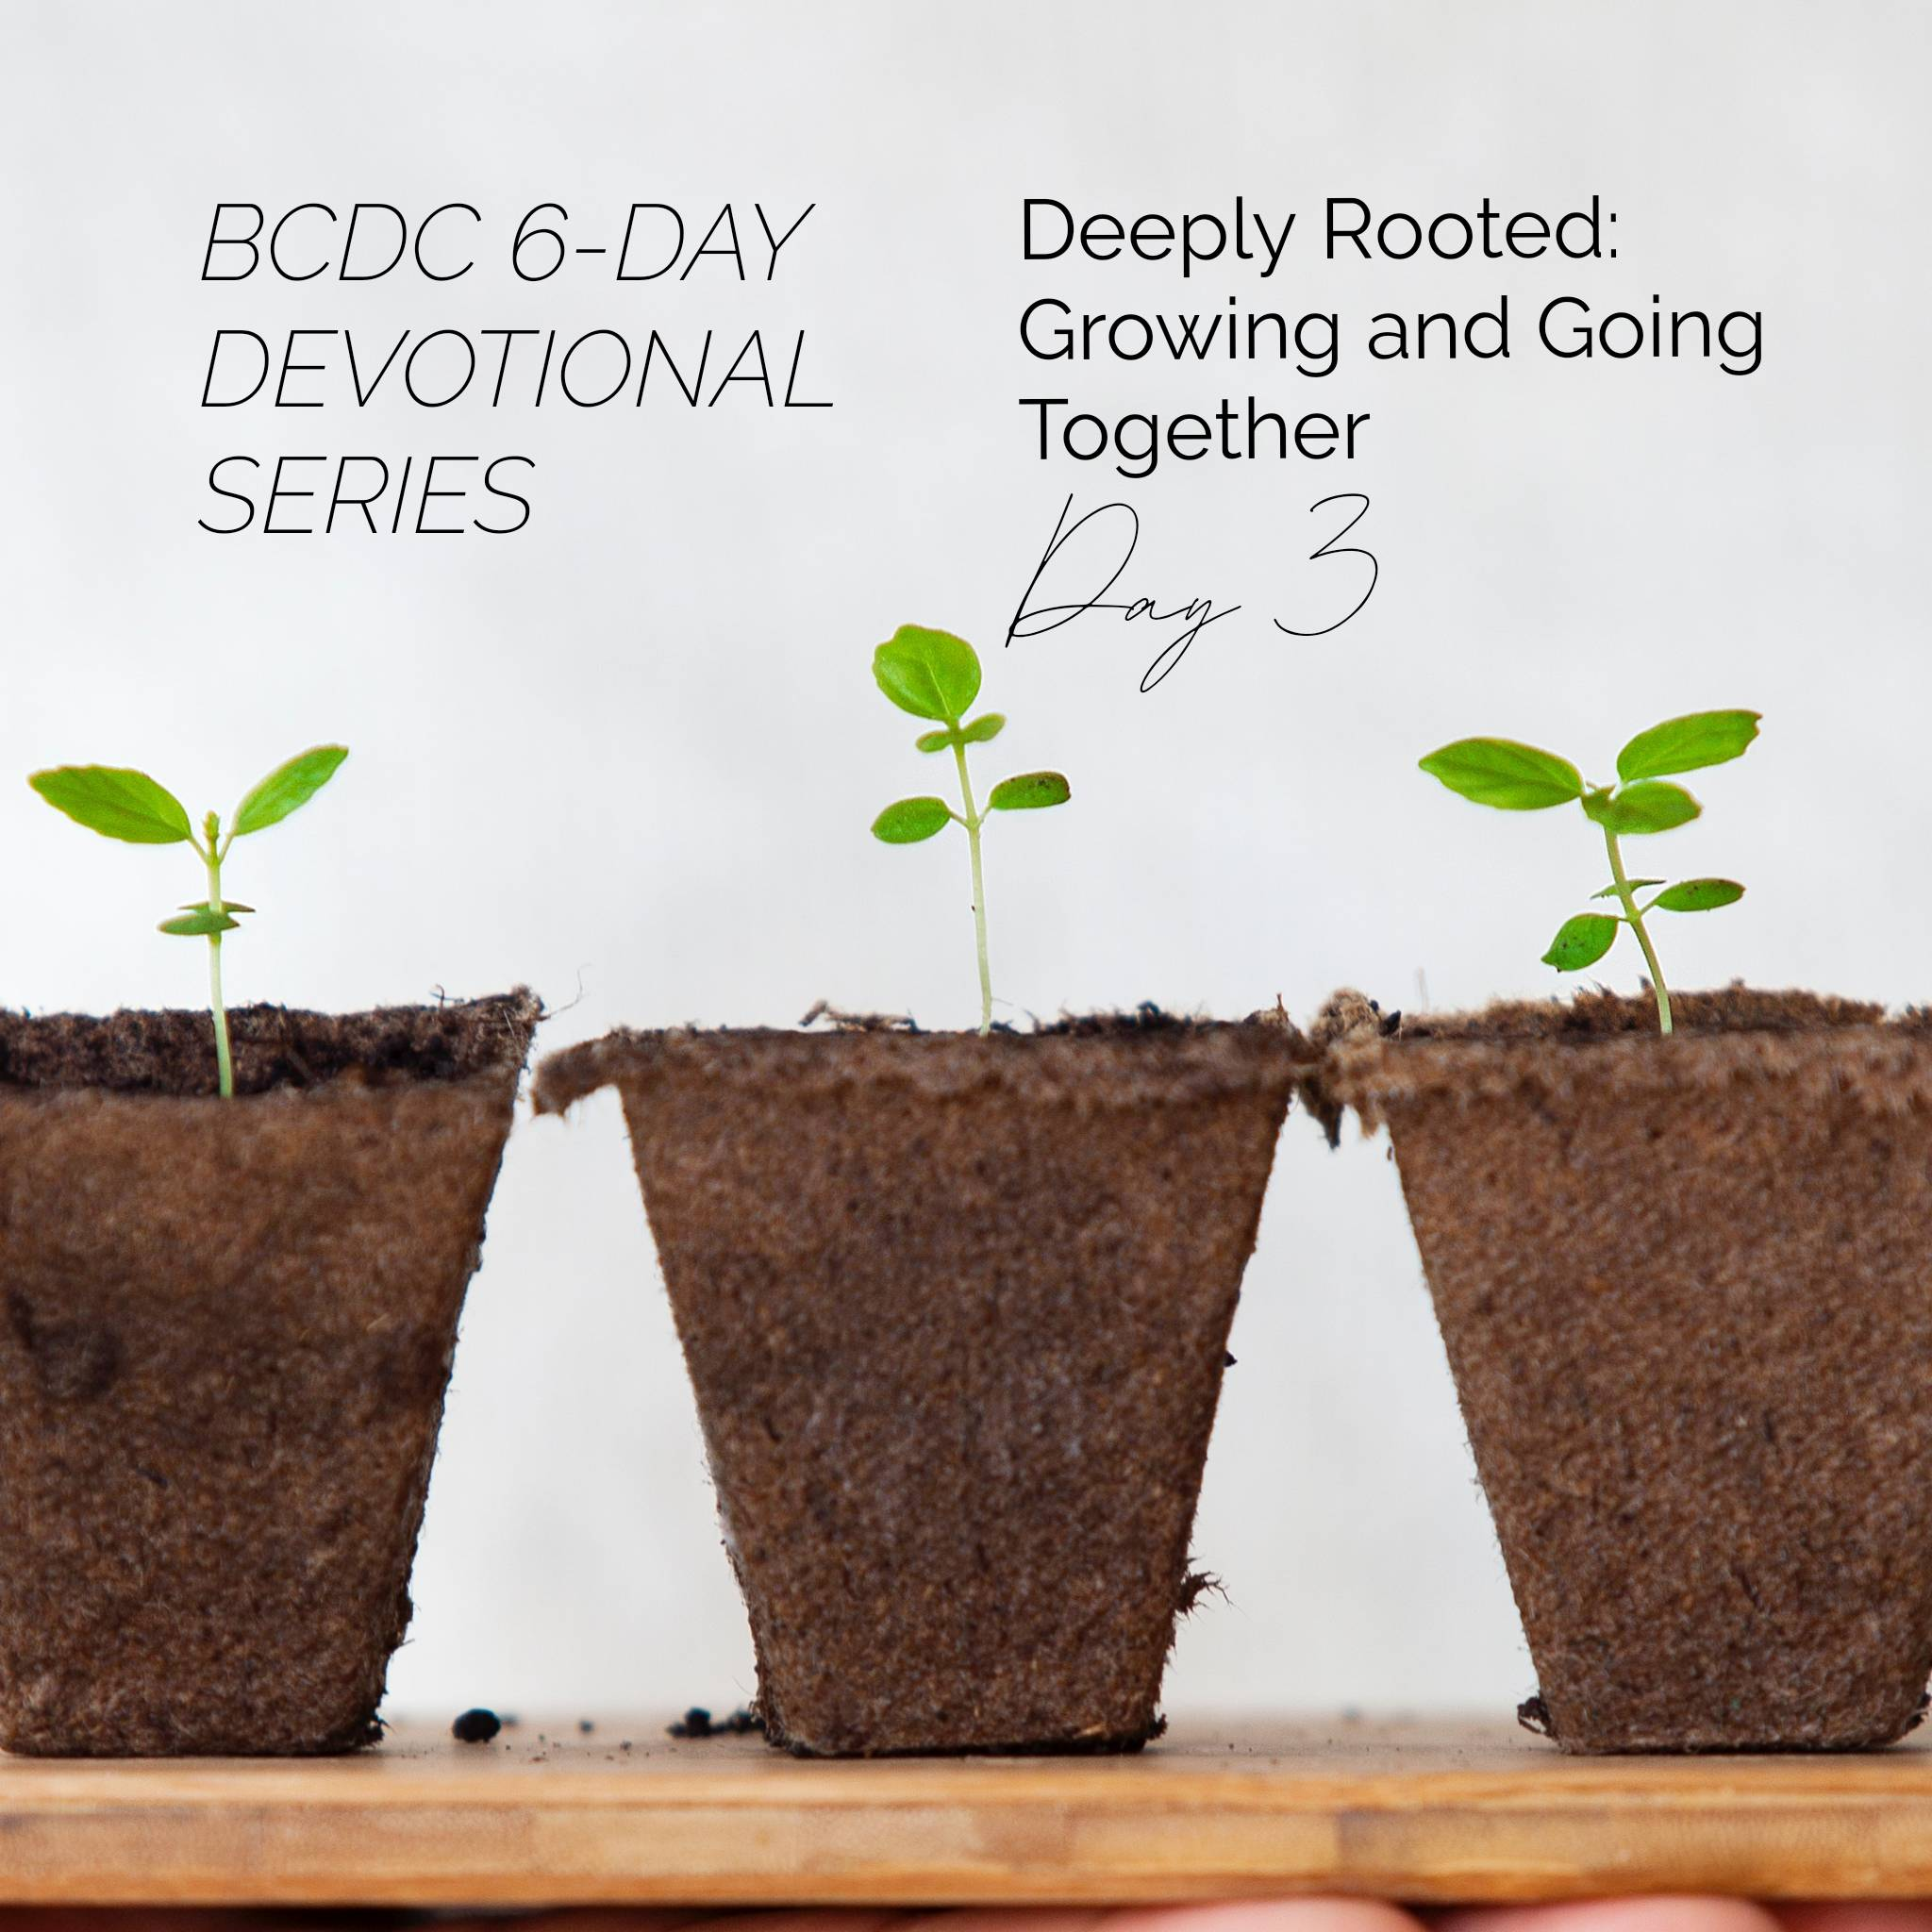 Deeply Rooted Devotional Day 3